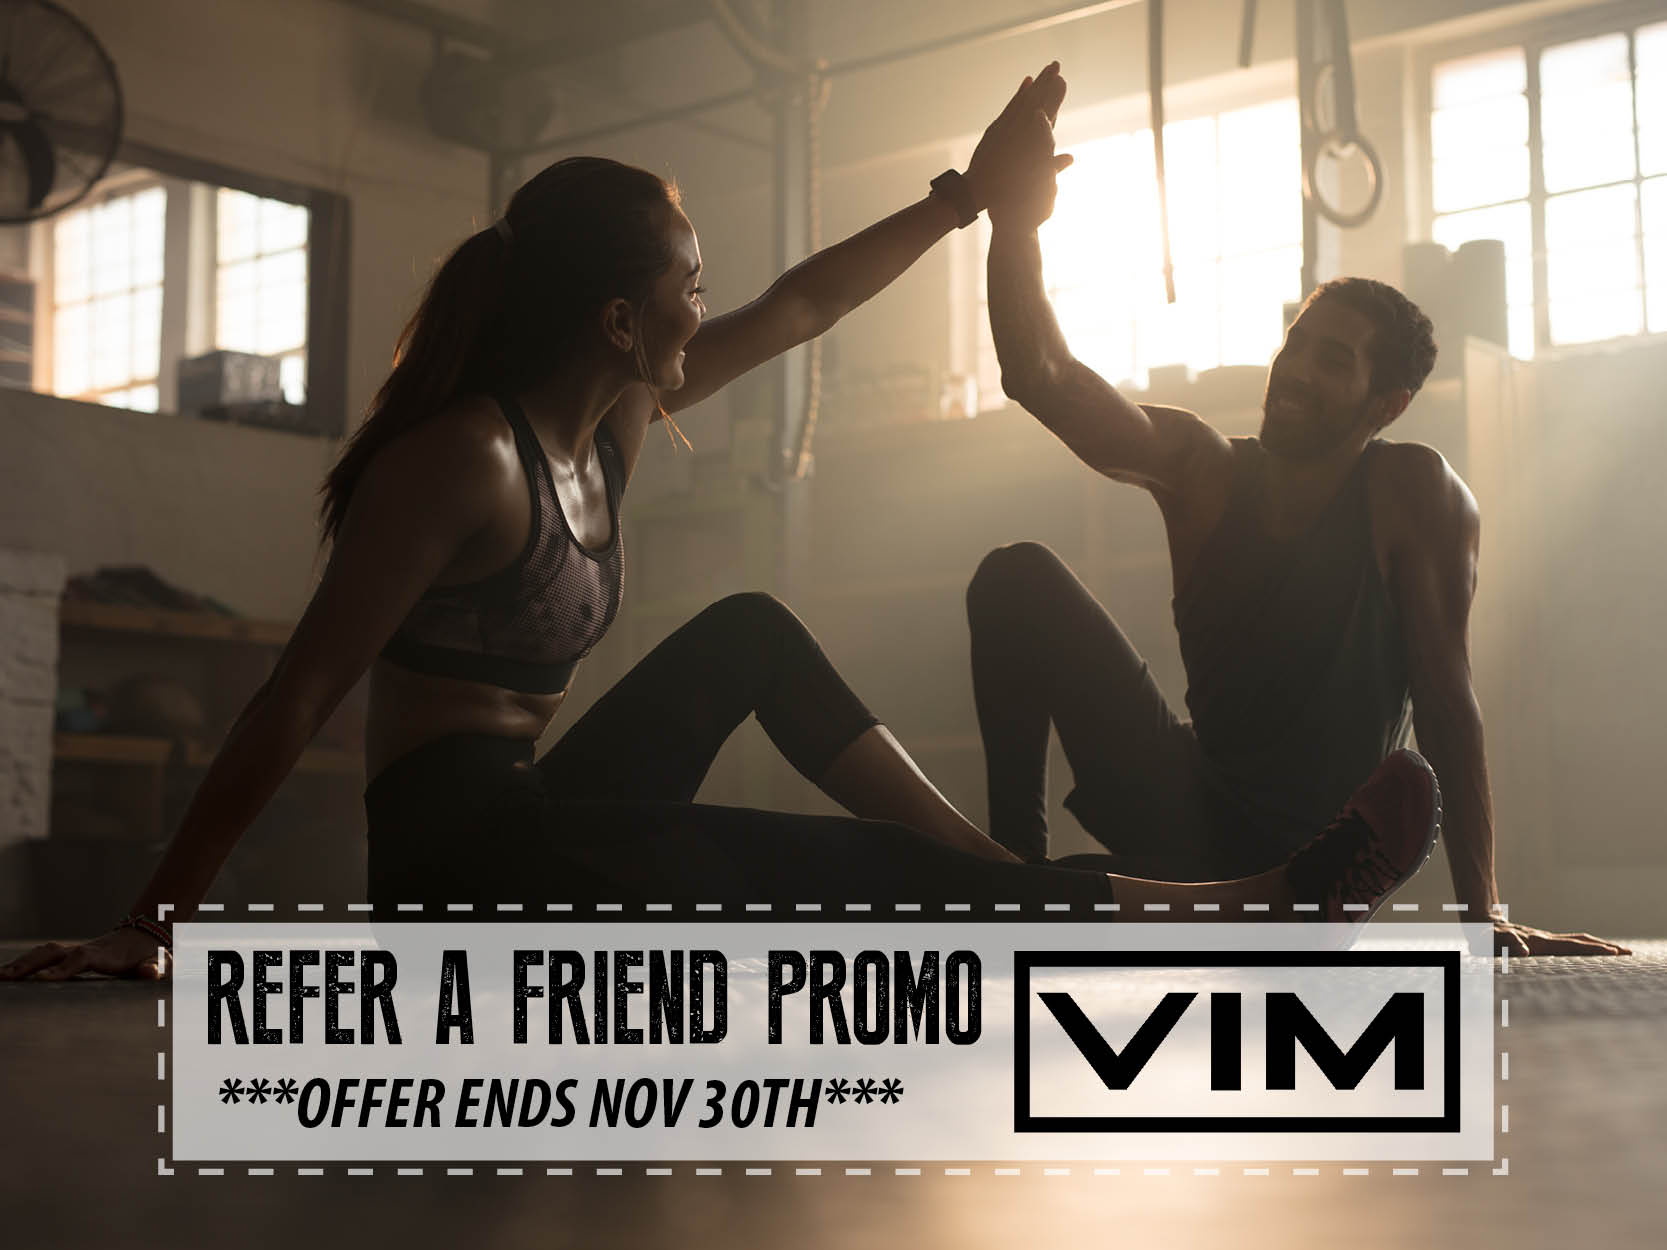 refer a friend promo